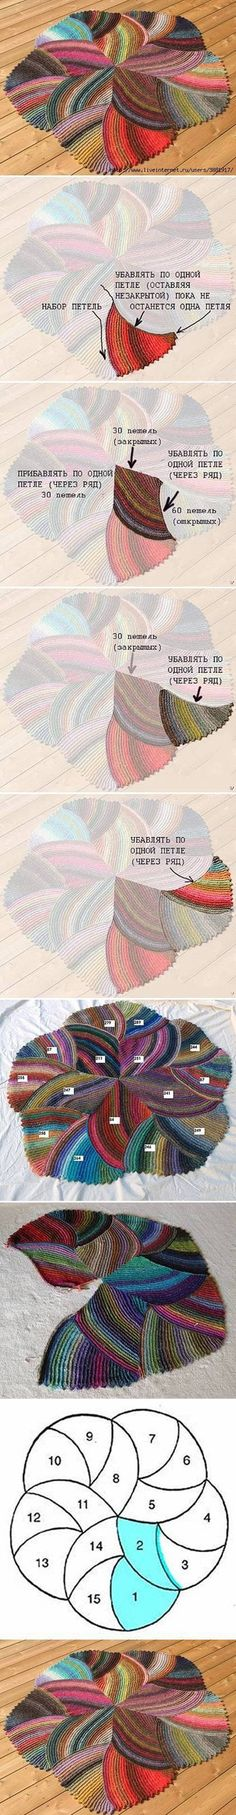 BEWARE OF LOTS OF ADS AT THE LINK. DIY Melange Rug. Instructions are in Russian; I haven't tried Google Translate yet or the liveinternet page. Beautiful, though, and I'd like to figure it out.